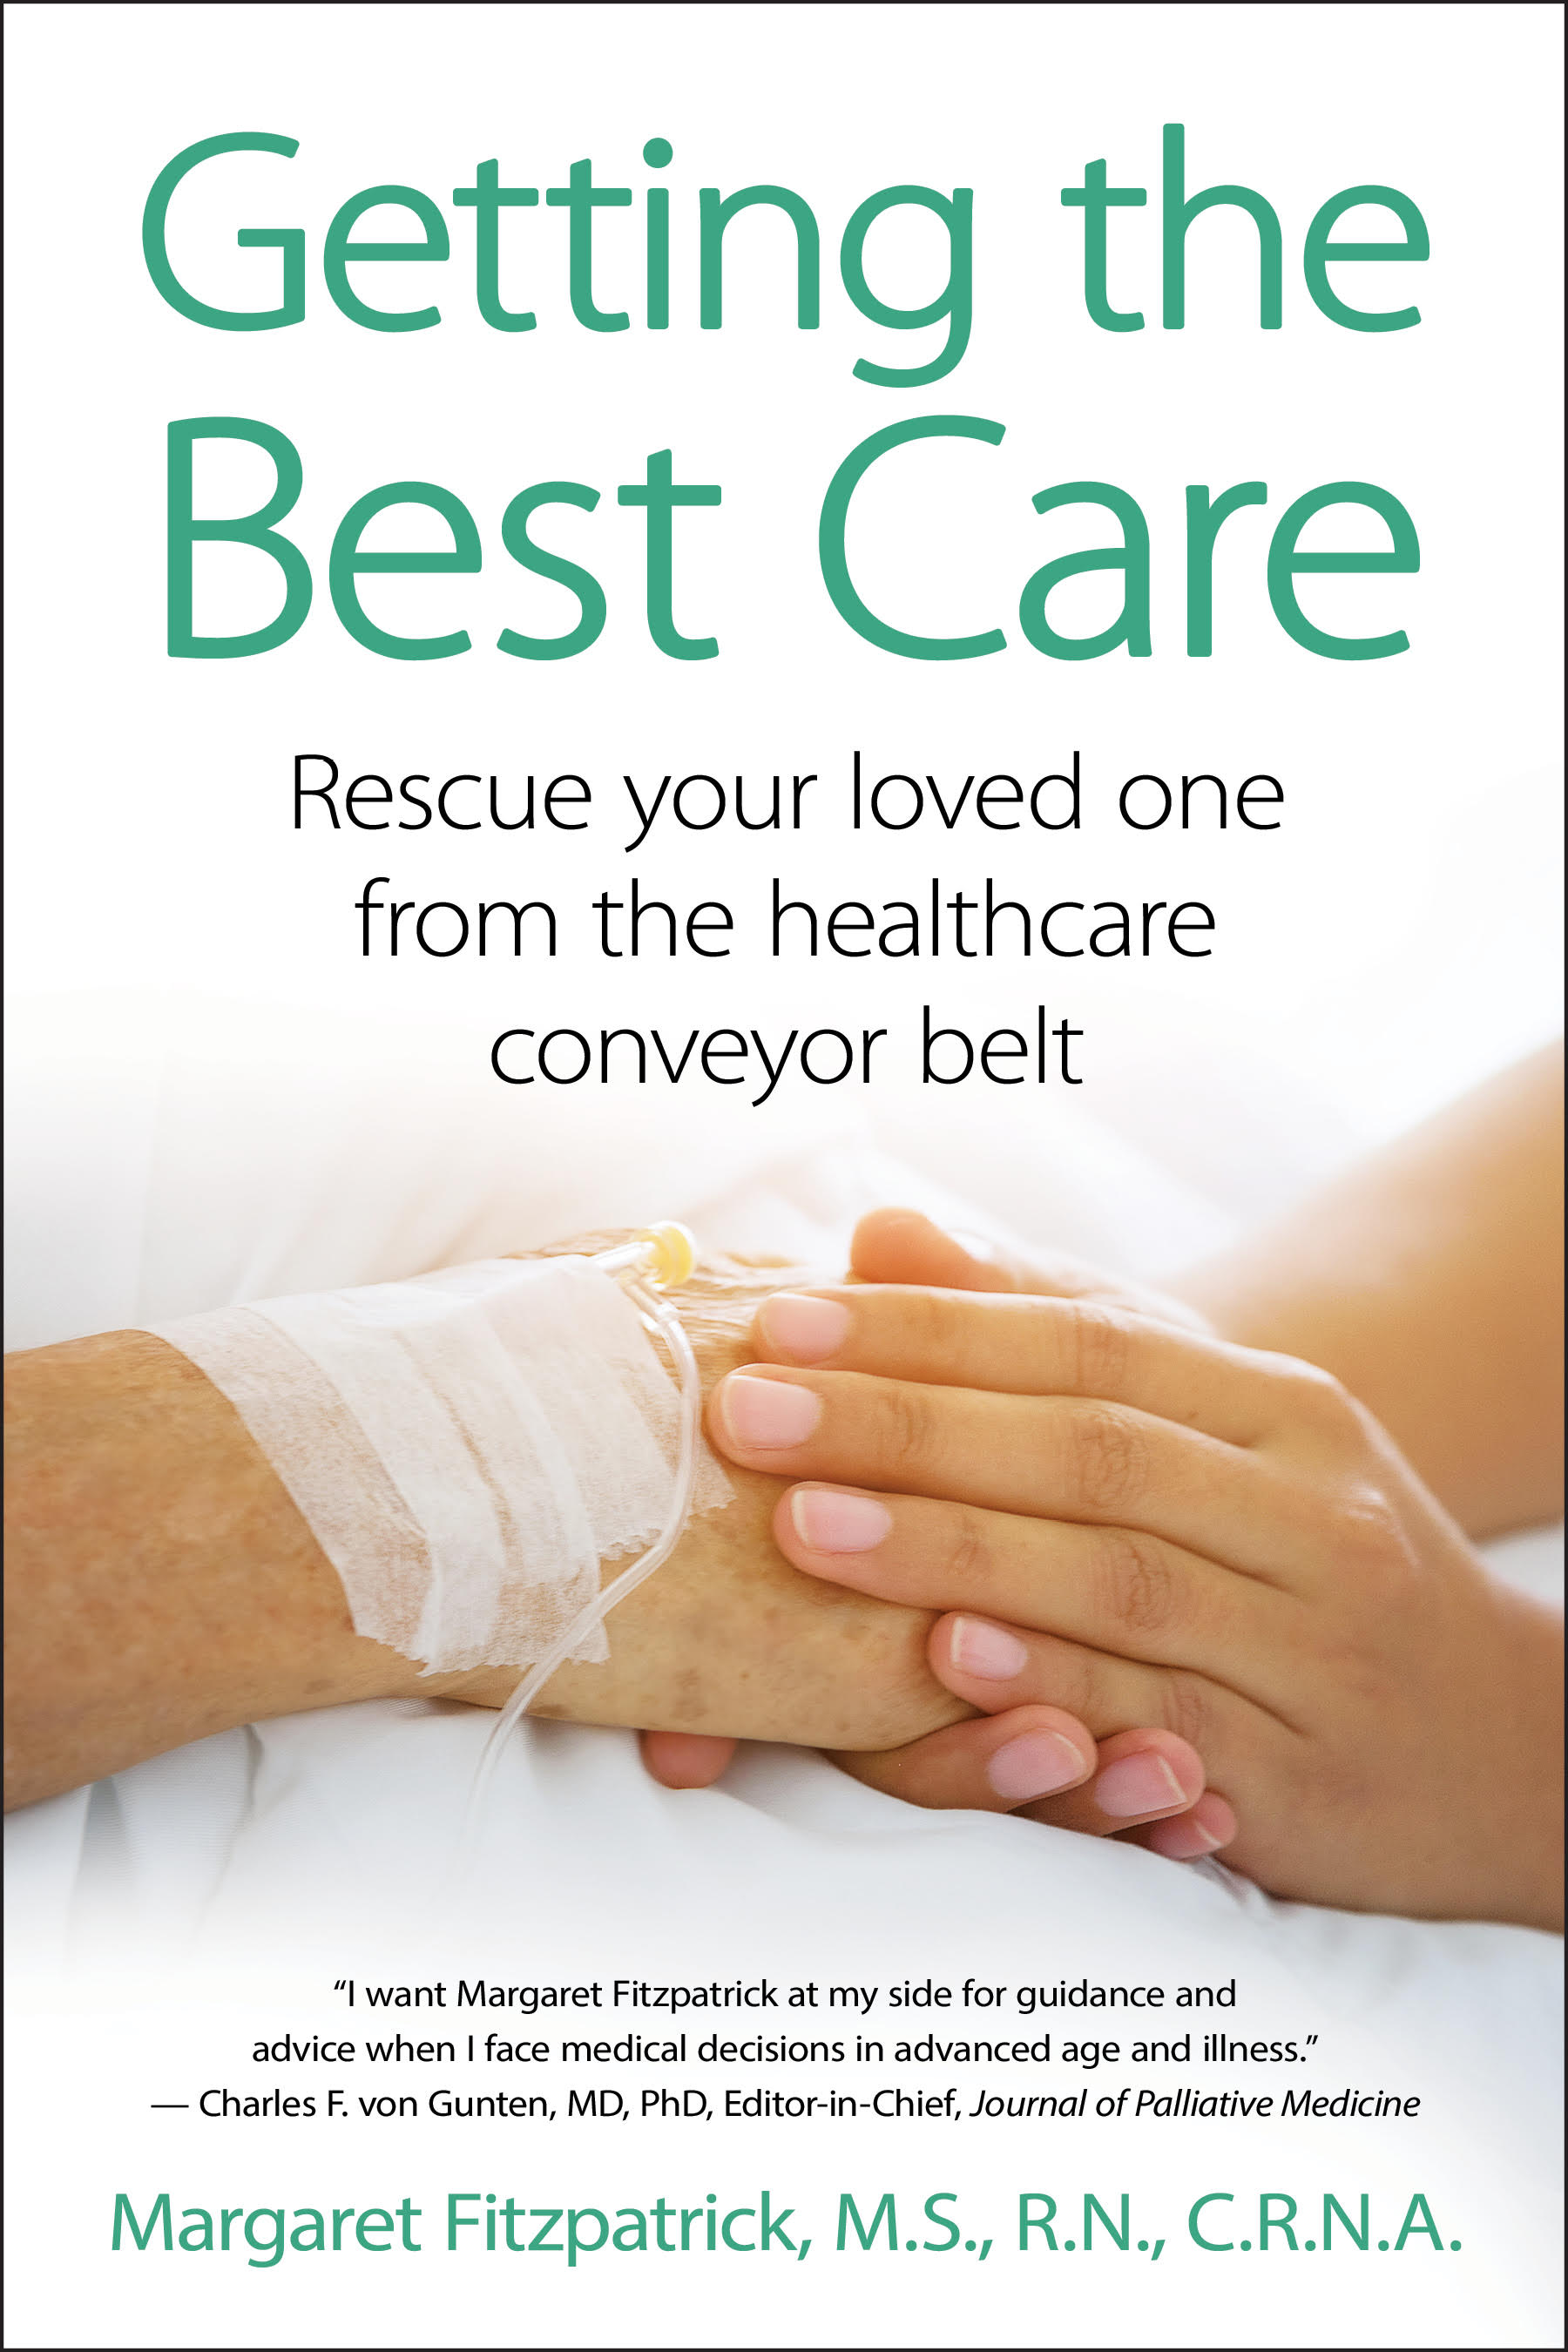 Enter to Win a free book! - Leave your email address for a chance to win an early copy of Getting the Best Care!